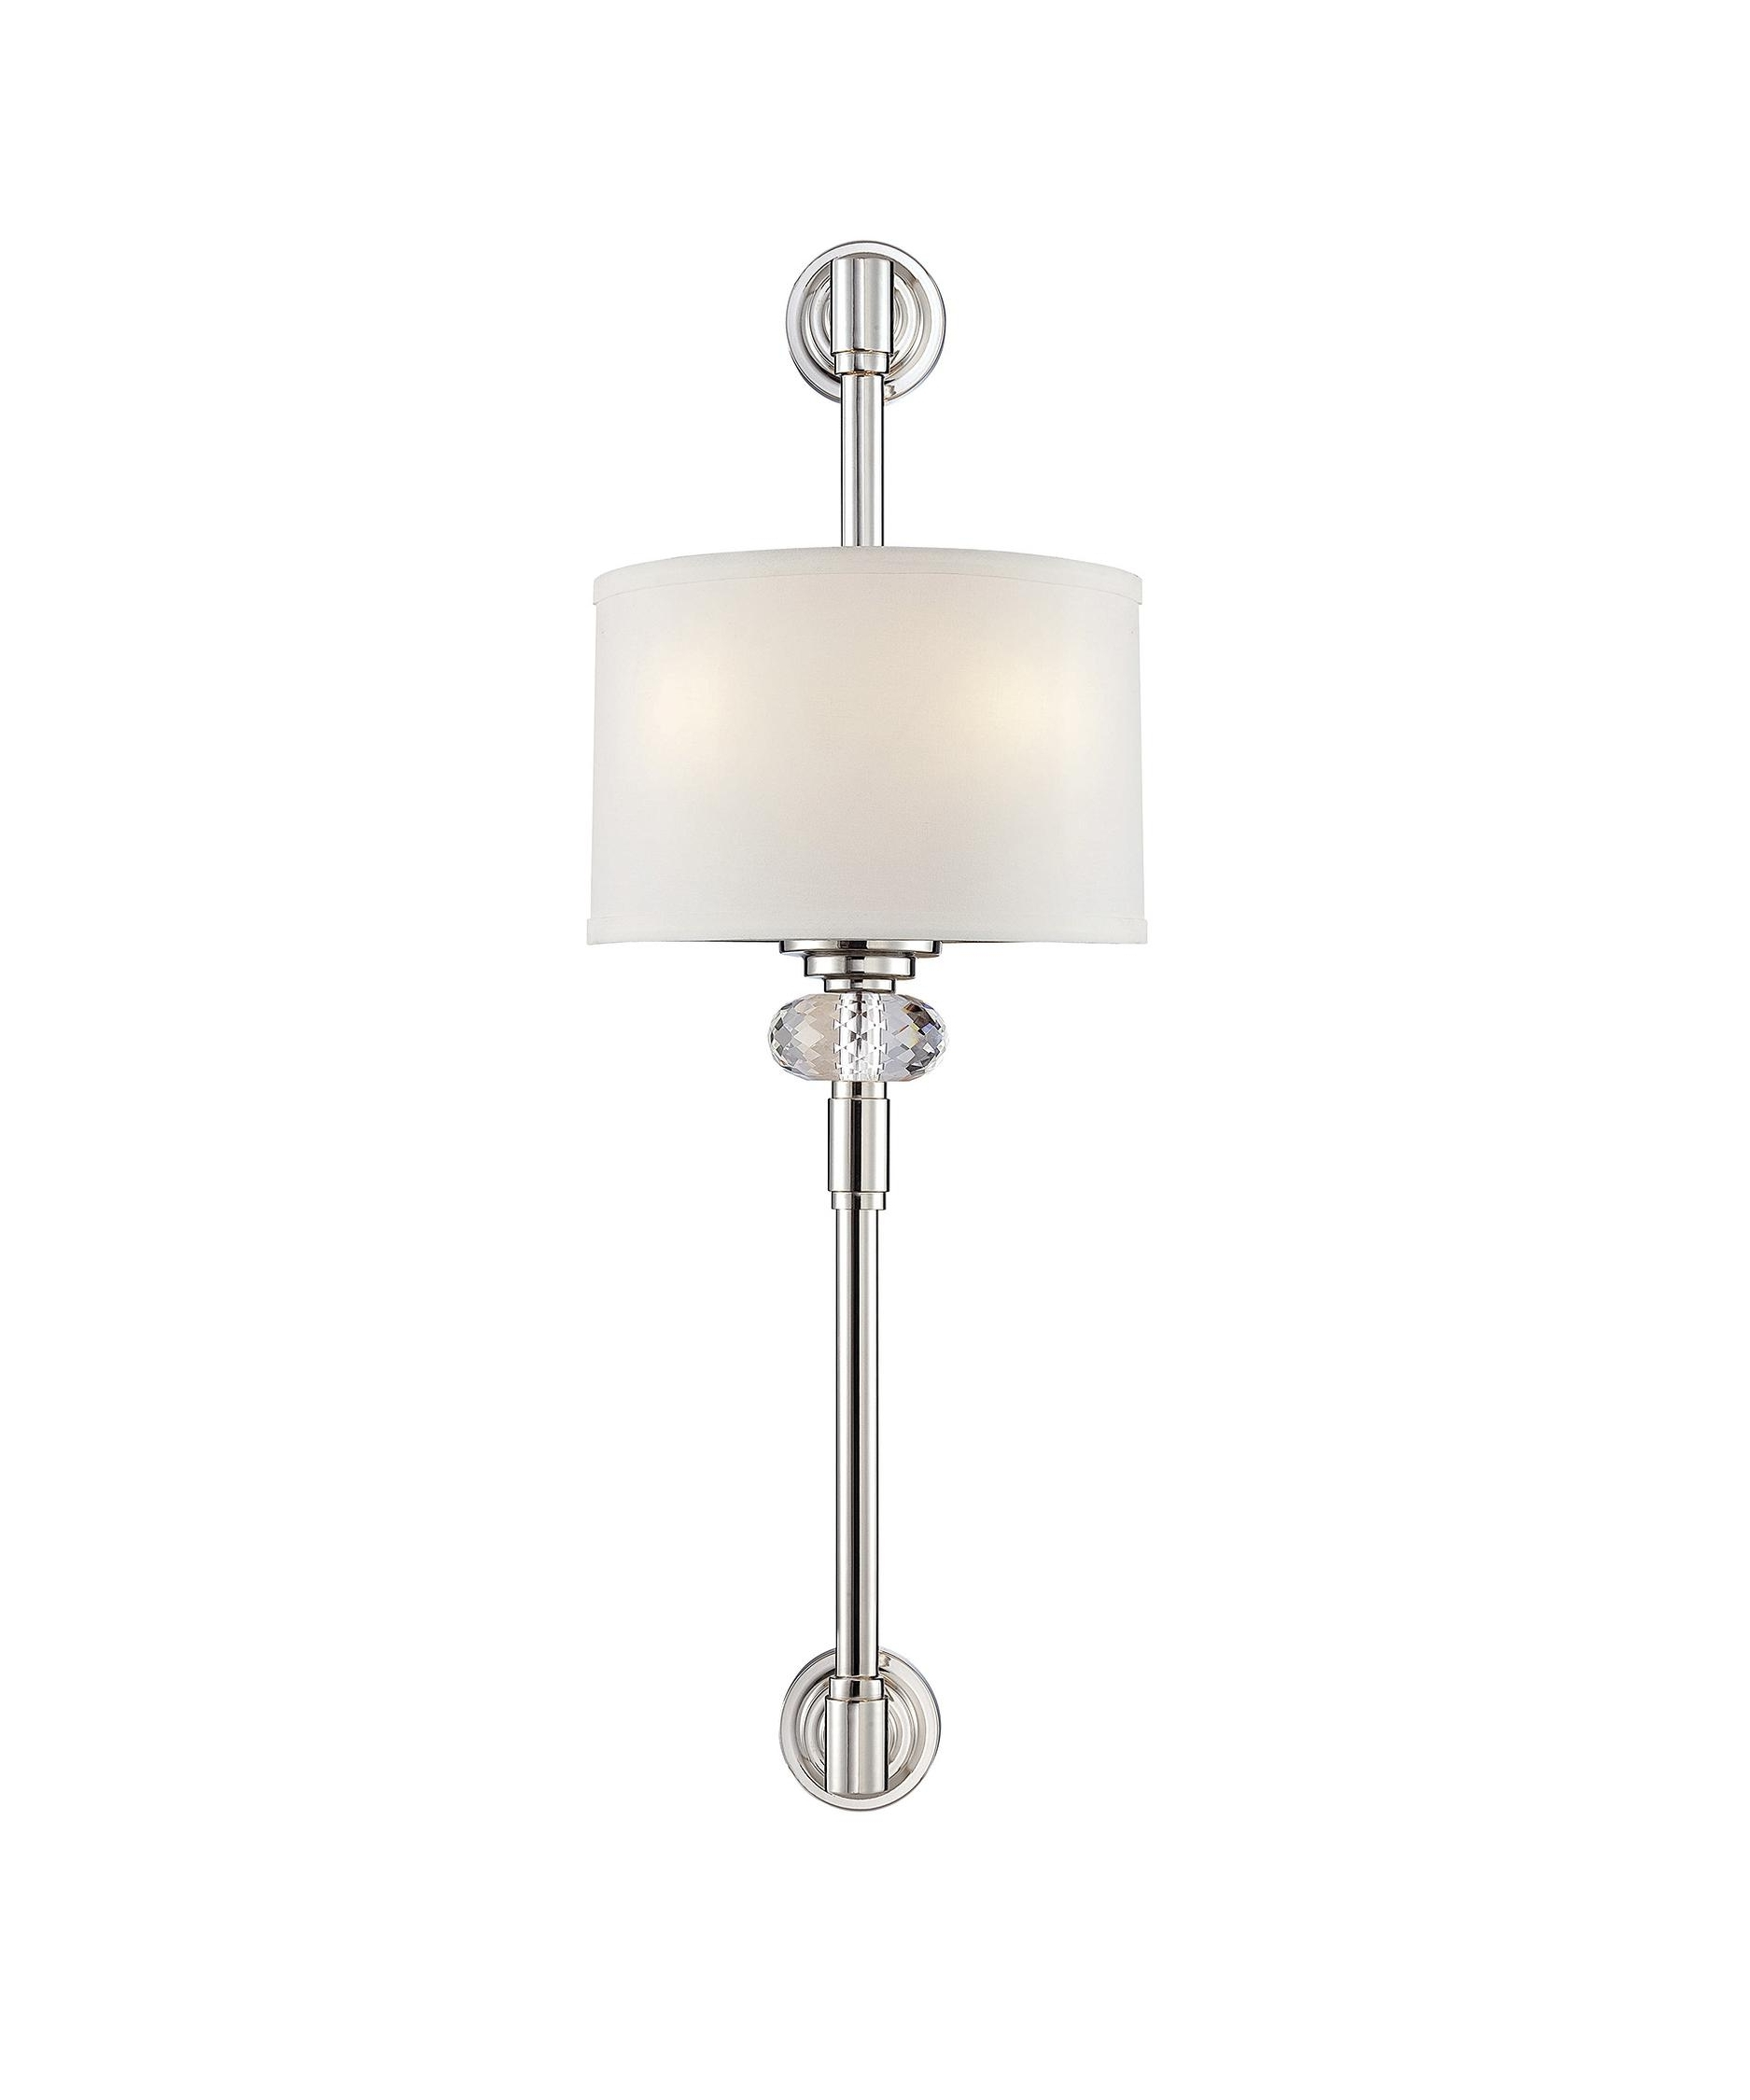 2018 Savoy House 9 5951 2 Marlow 11 Inch Wide Wall Sconce (View 2 of 20)